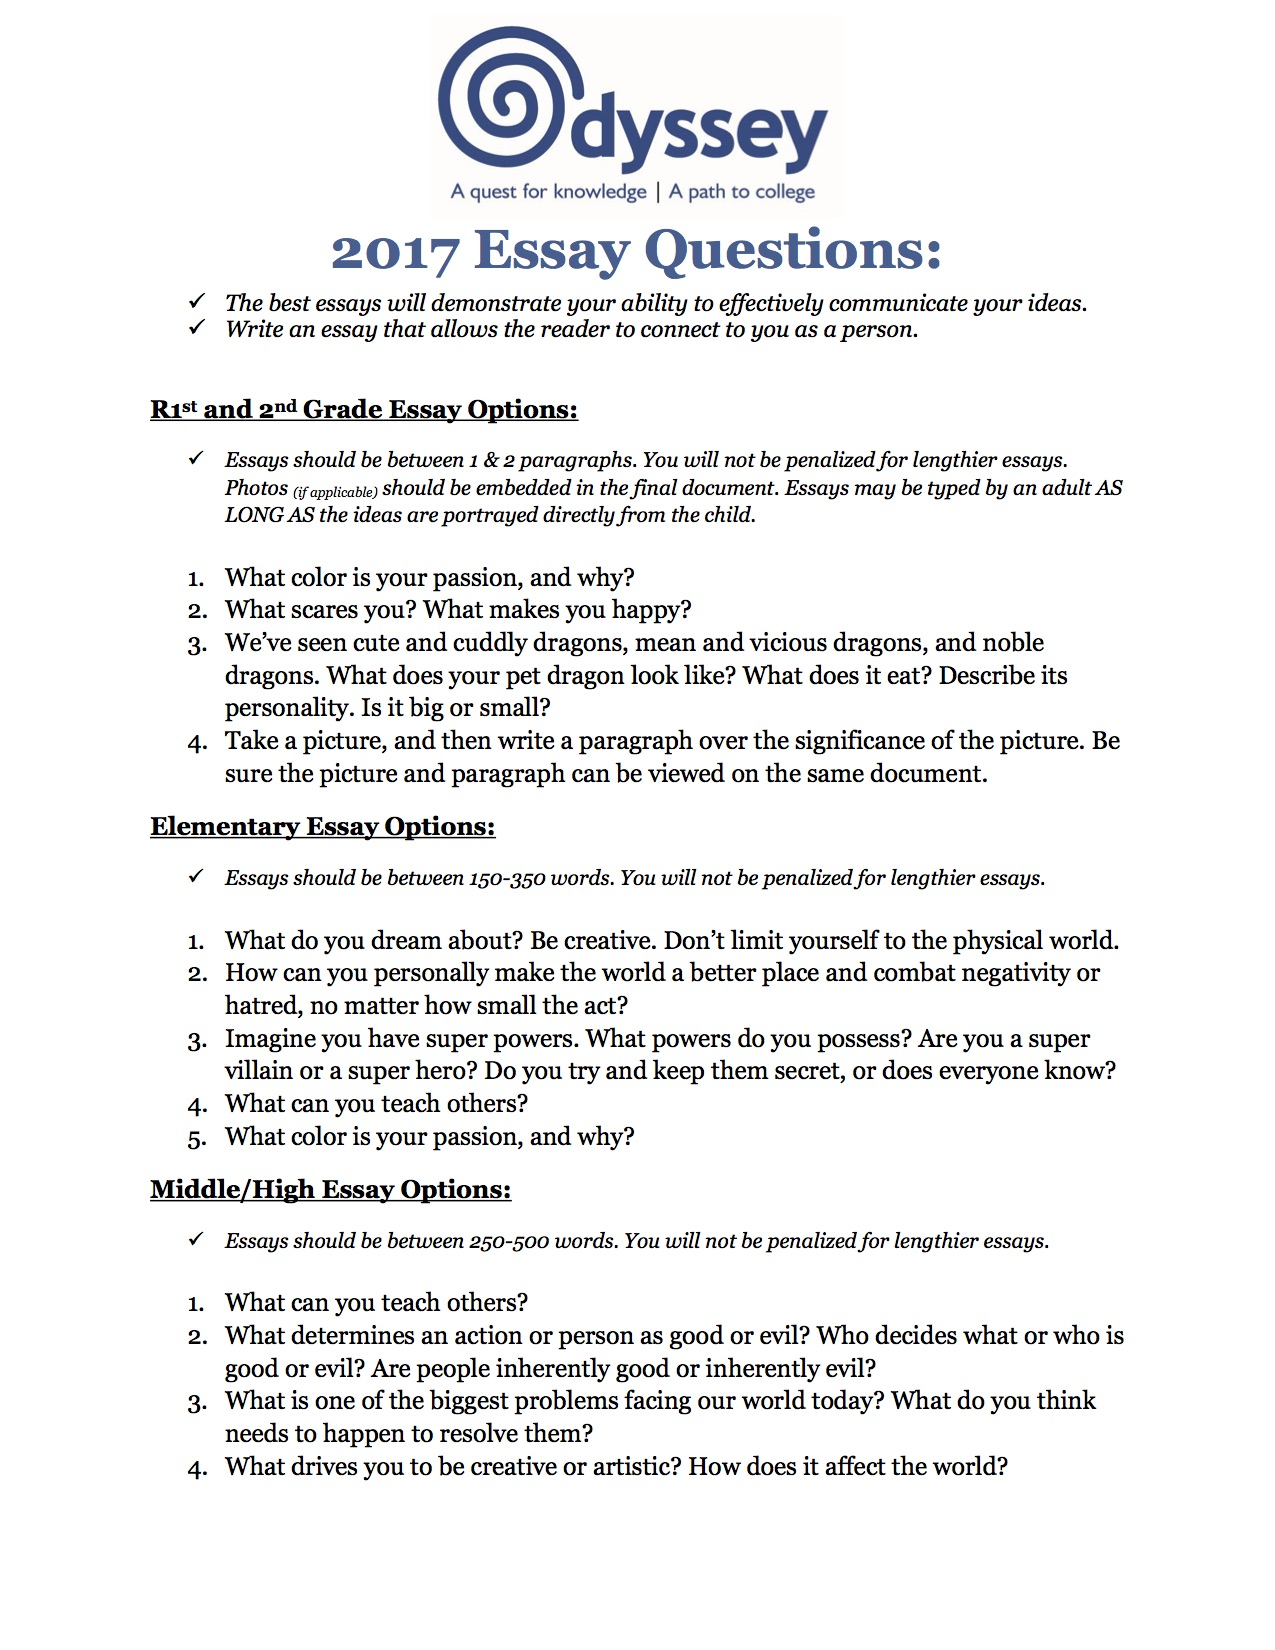 013 Argumentative Essay Topics Example Persuasive Outline For Middle School Students L Beautiful 2017 The Most Popular Of List Cxc Full